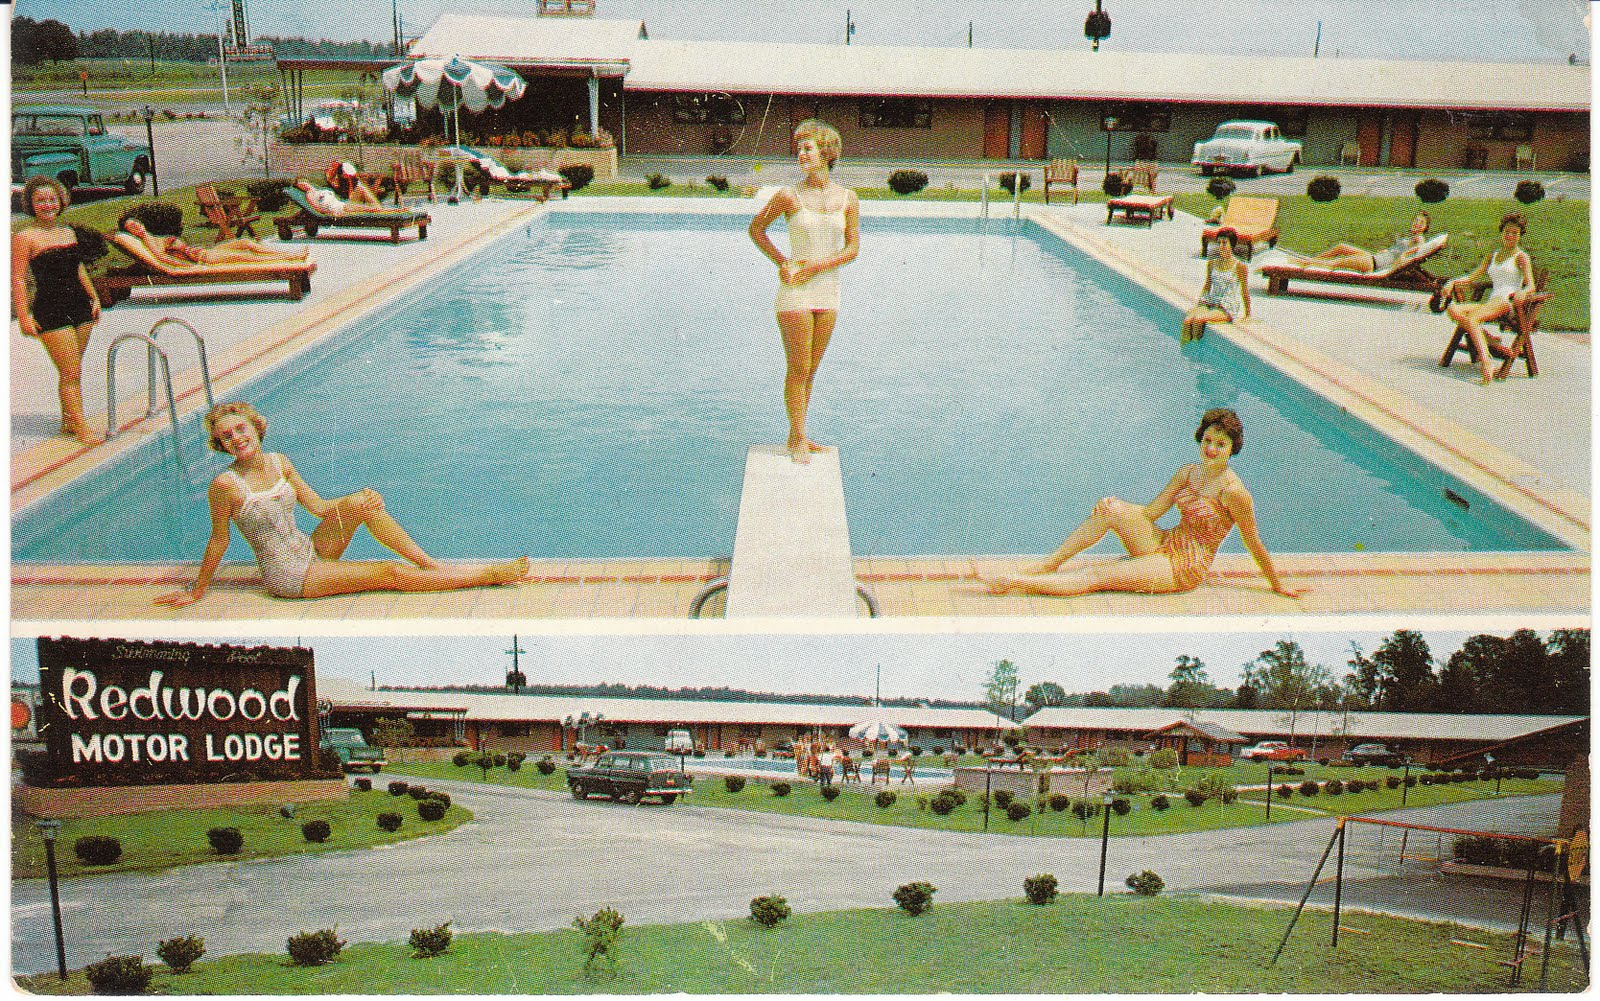 Rooms: View From The Birdhouse: More Mid-Century Motel Postcards